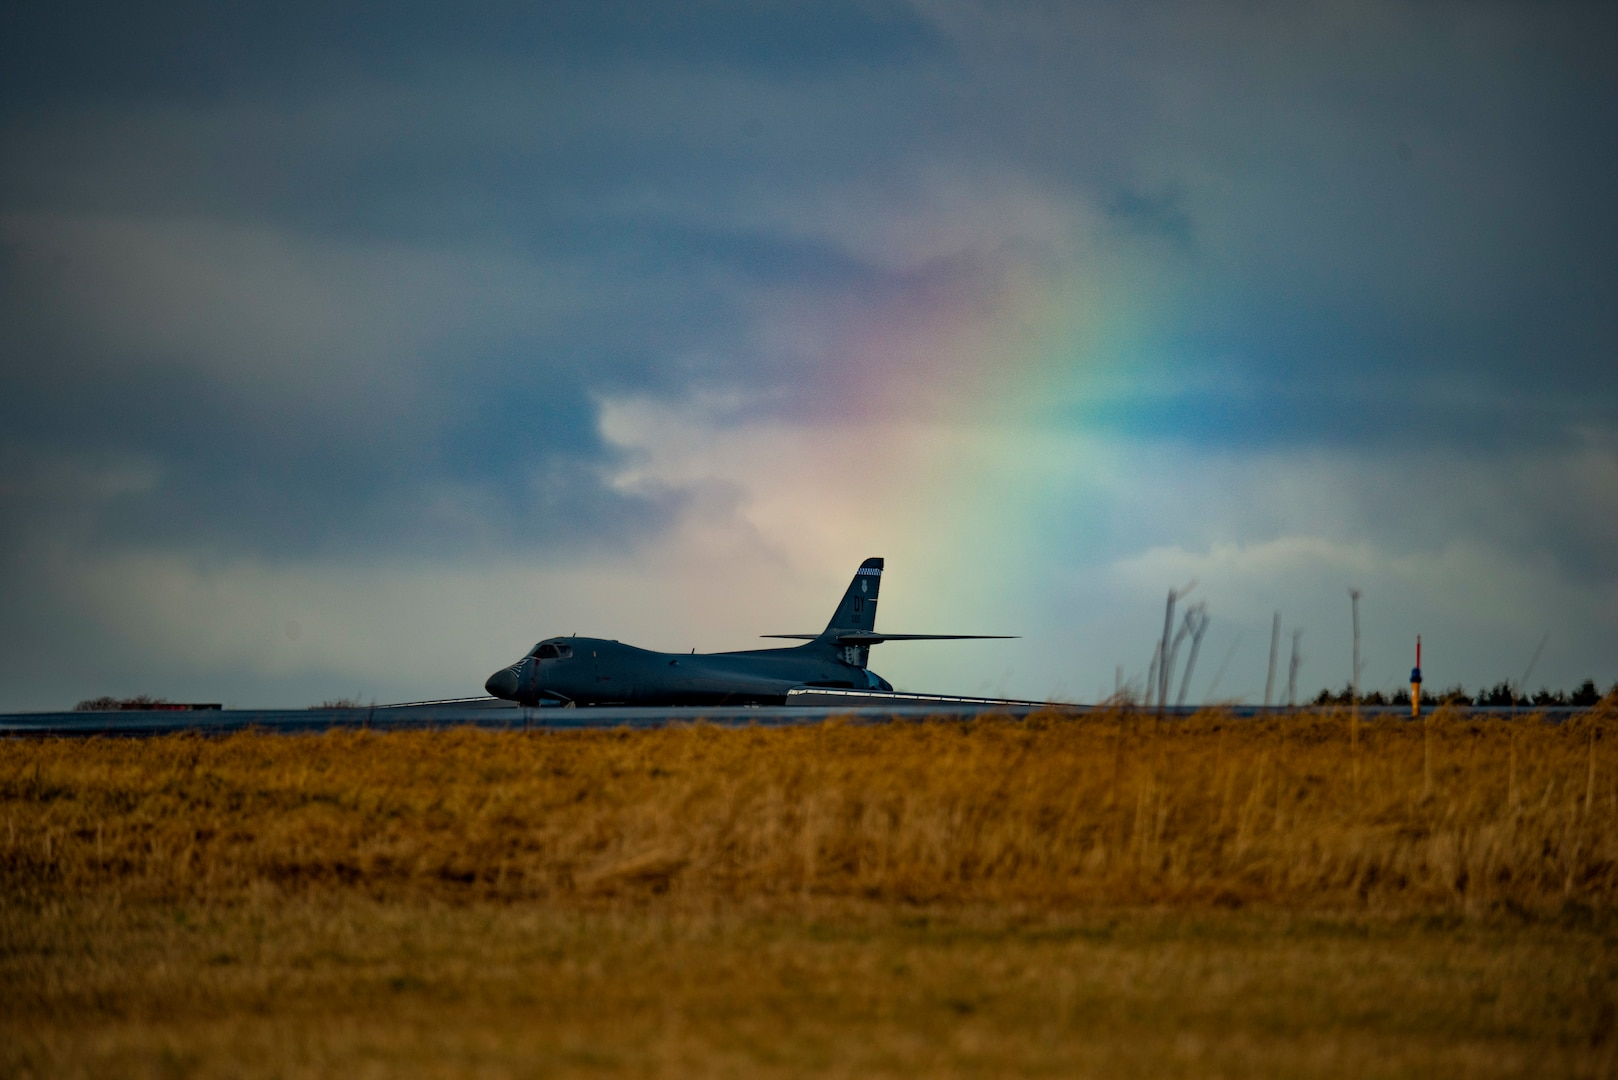 A B-1B Lancer assigned to the 9th Expeditionary Bomb Squadron taxis on the flightline at Ørland Air Force Station, Norway, Feb. 26, 2021. During the Bomber Task Force Europe deployment, the 9th EBS will integrate with ally and partner forces, providing key training for aircrew throughout the European theater and Arctic region. (U.S. Air Force photo by Airman 1st Class Colin Hollowell)